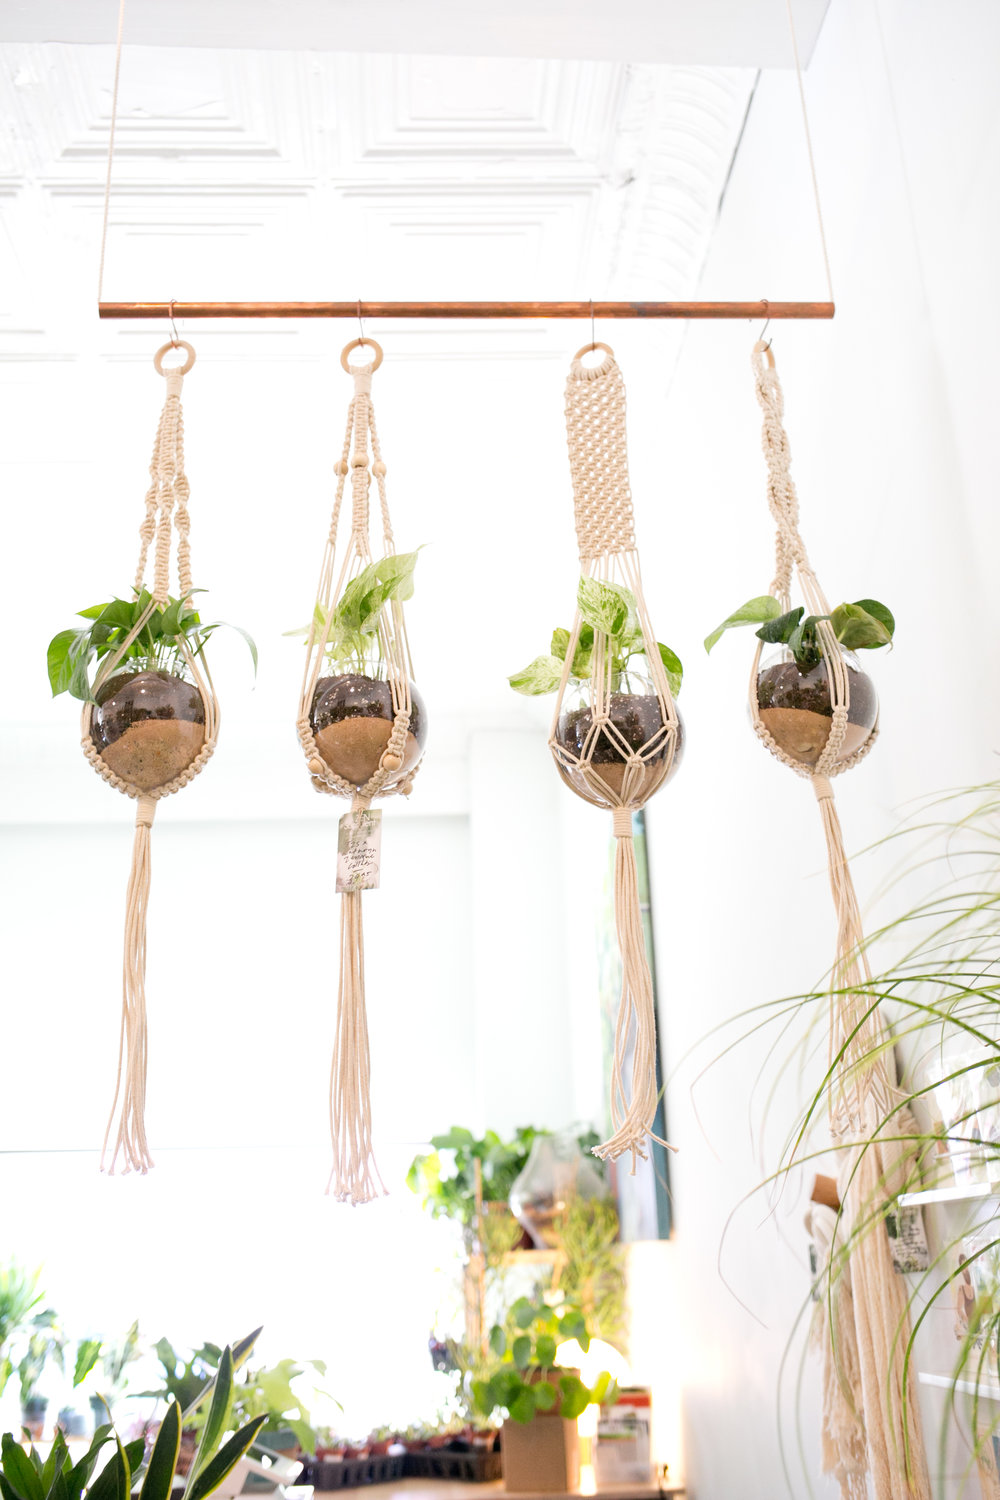 In addition to plants, we offer a wide variety of plant hangers made of different materials and in various sizes.